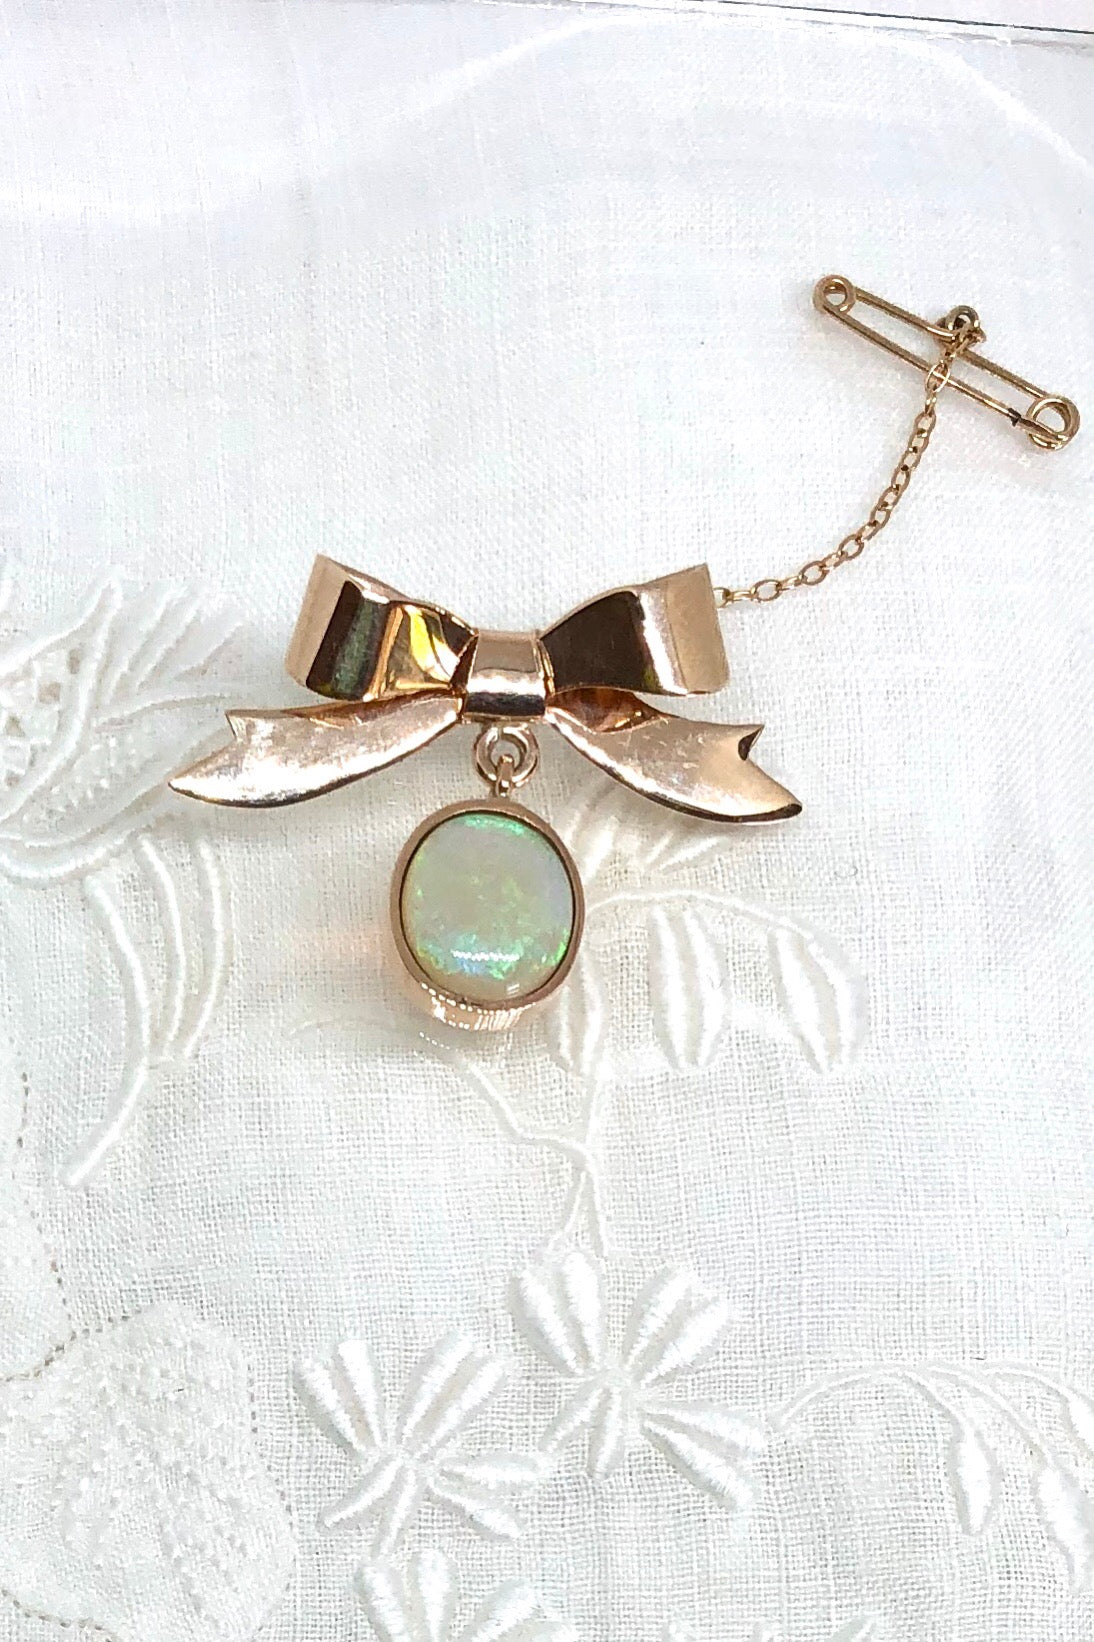 Vintage Solid Opal and 9ct Gold Bow Brooch